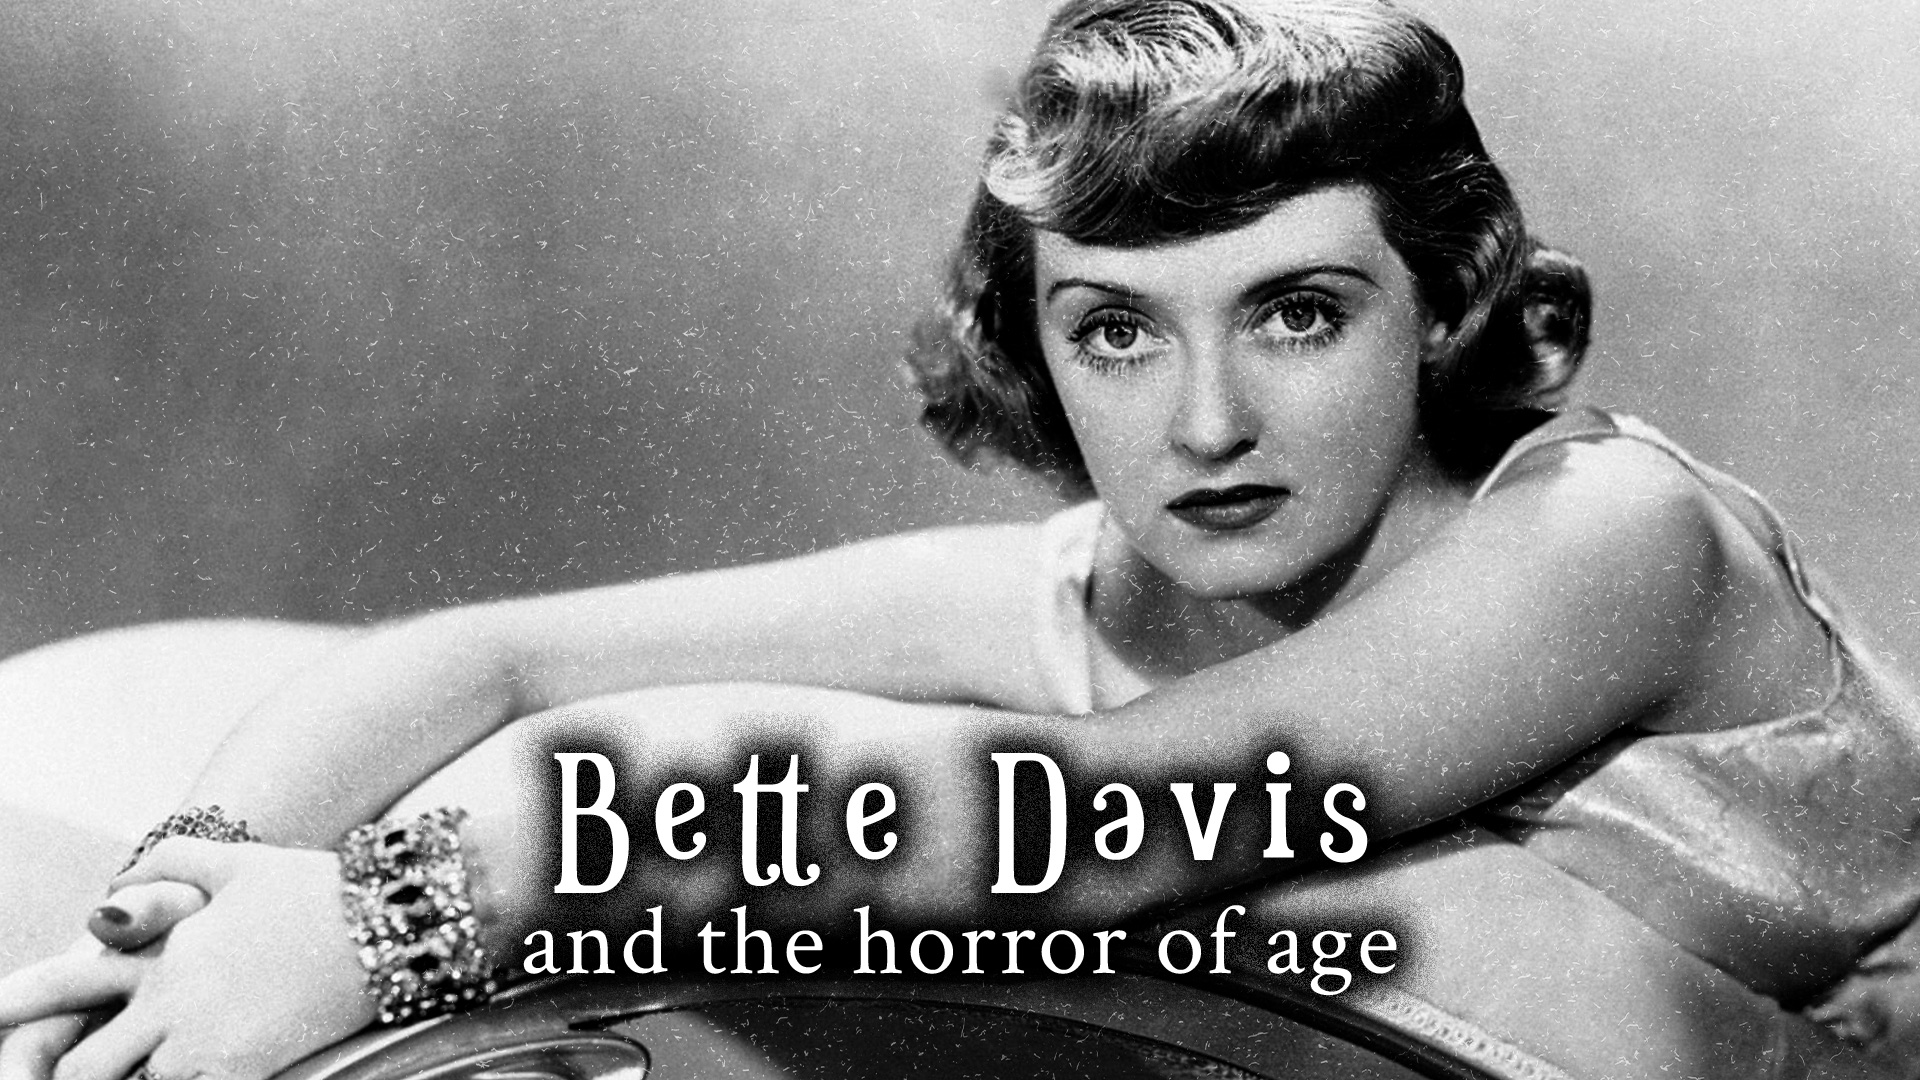 HORRORWOOD™ Presents... 'Bette Davis and the Horror of Age'